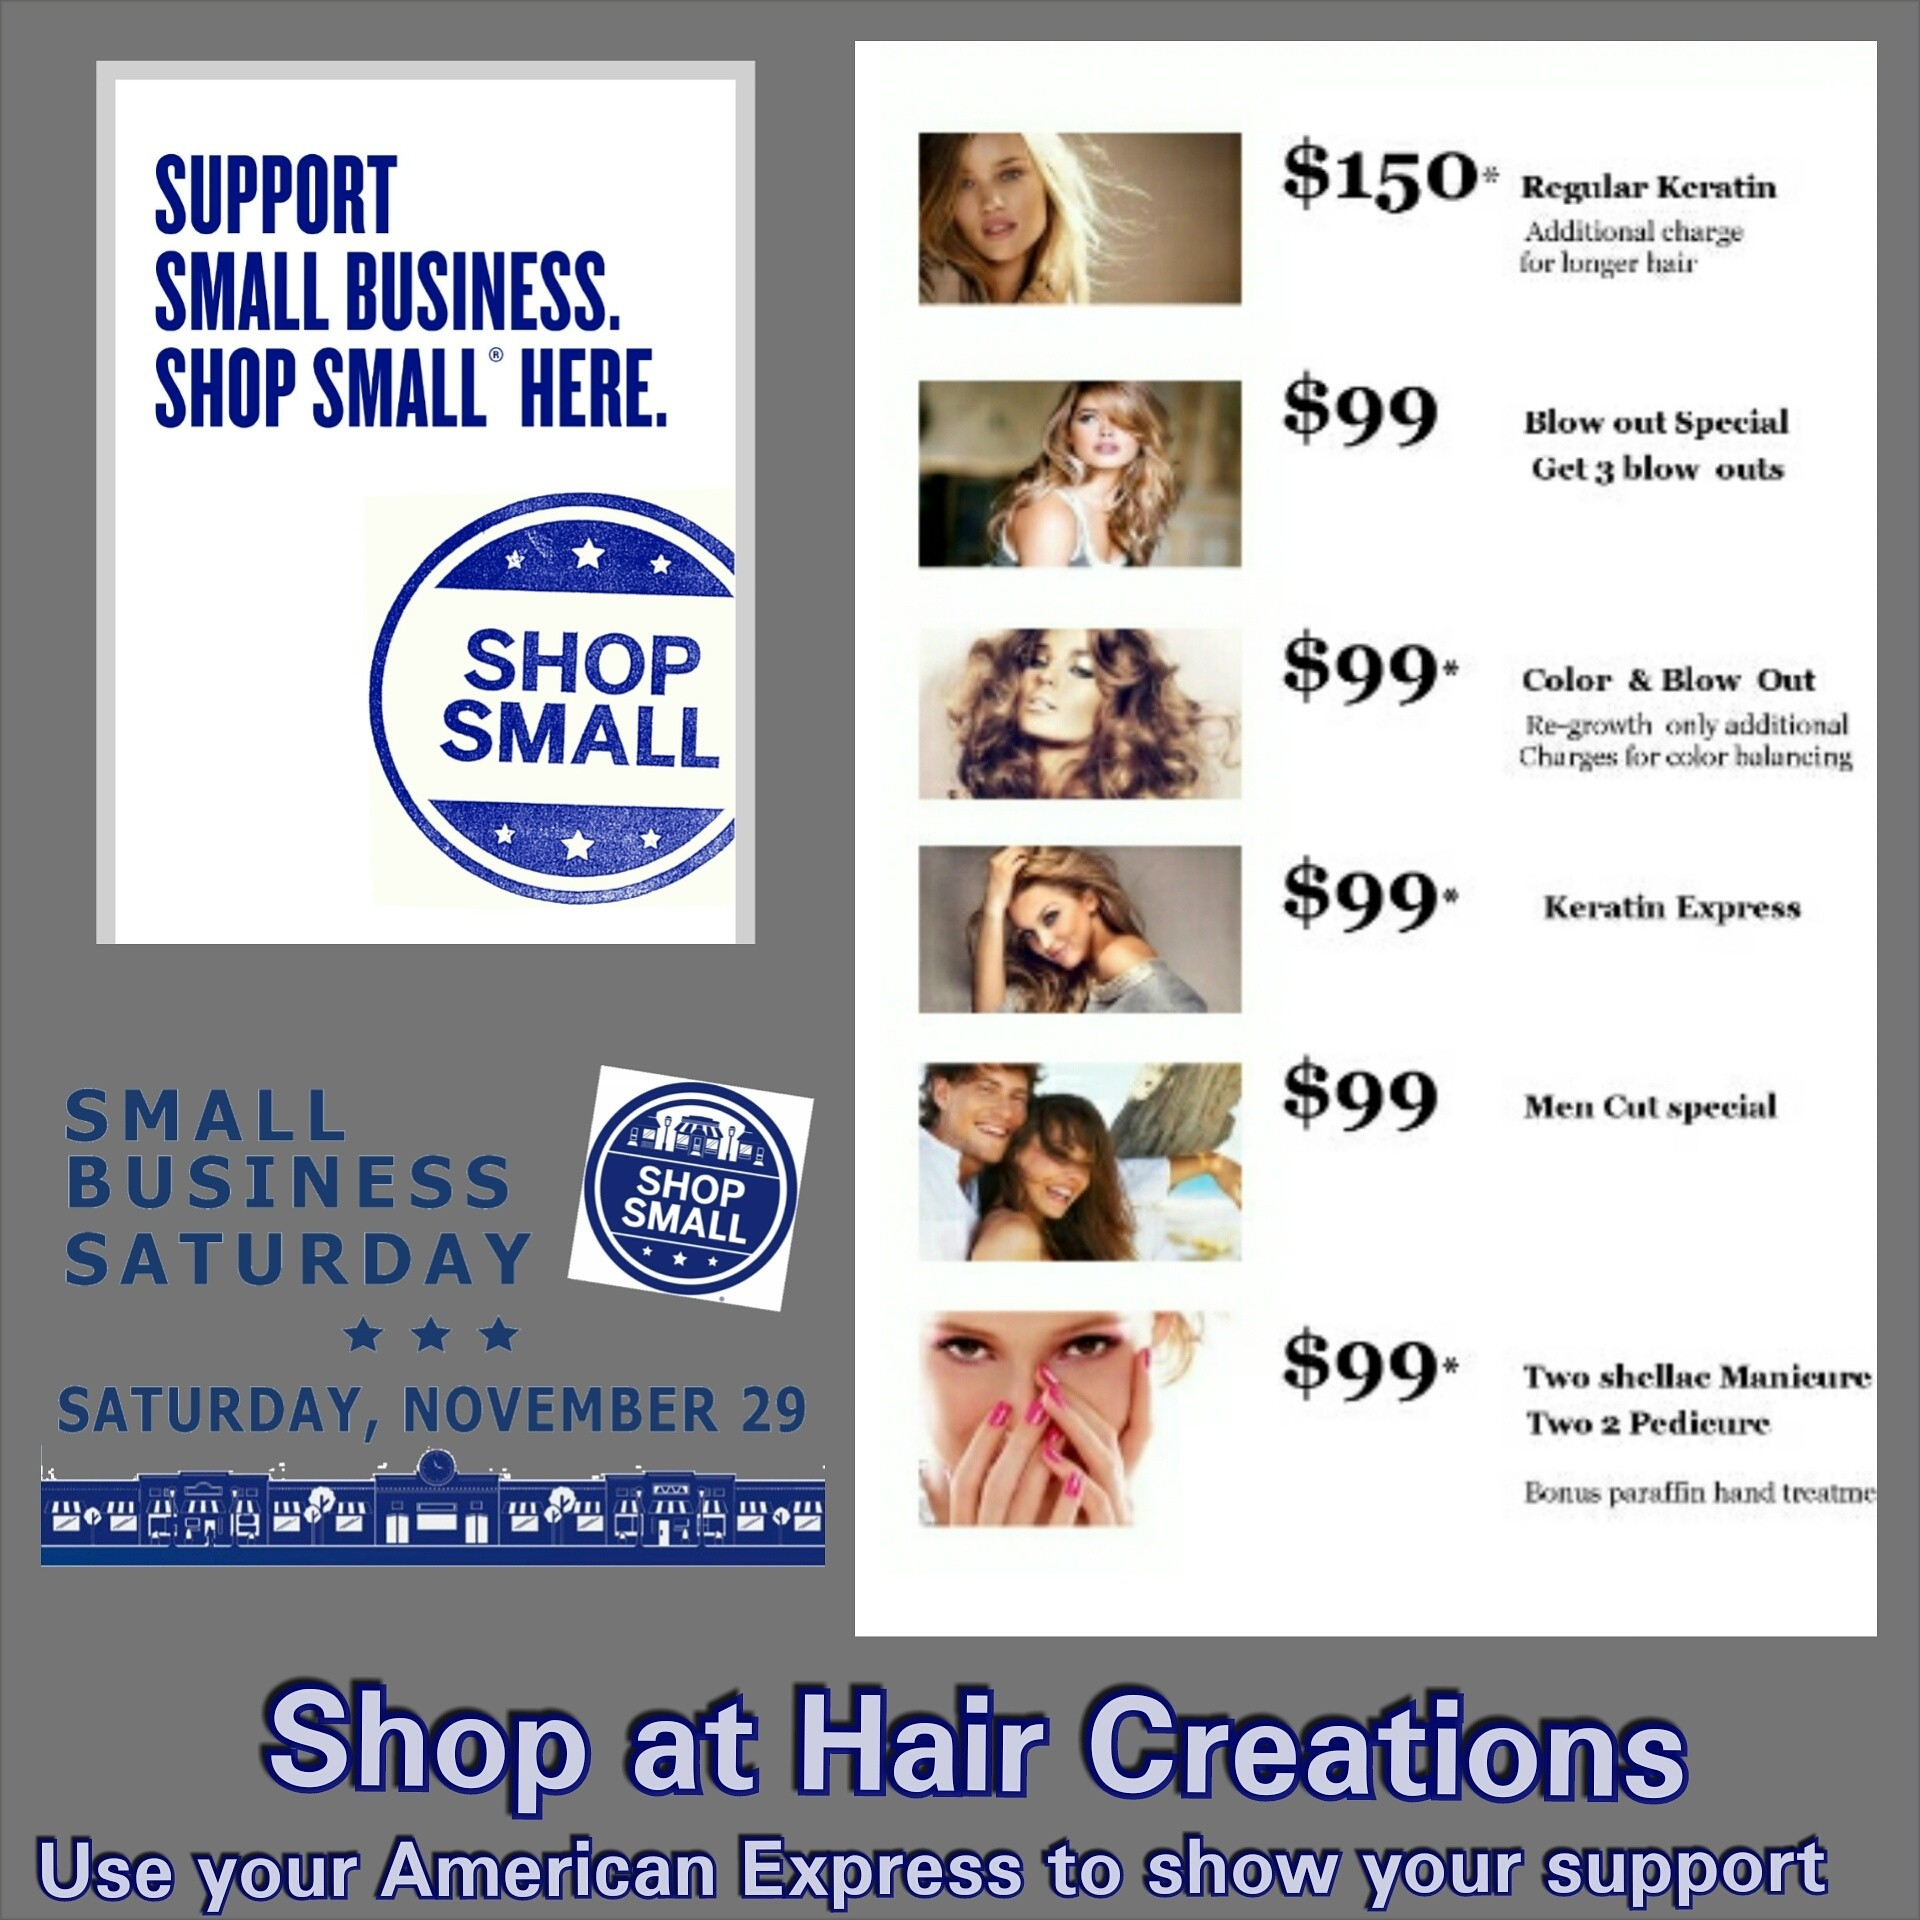 #shopsmall support small businesses